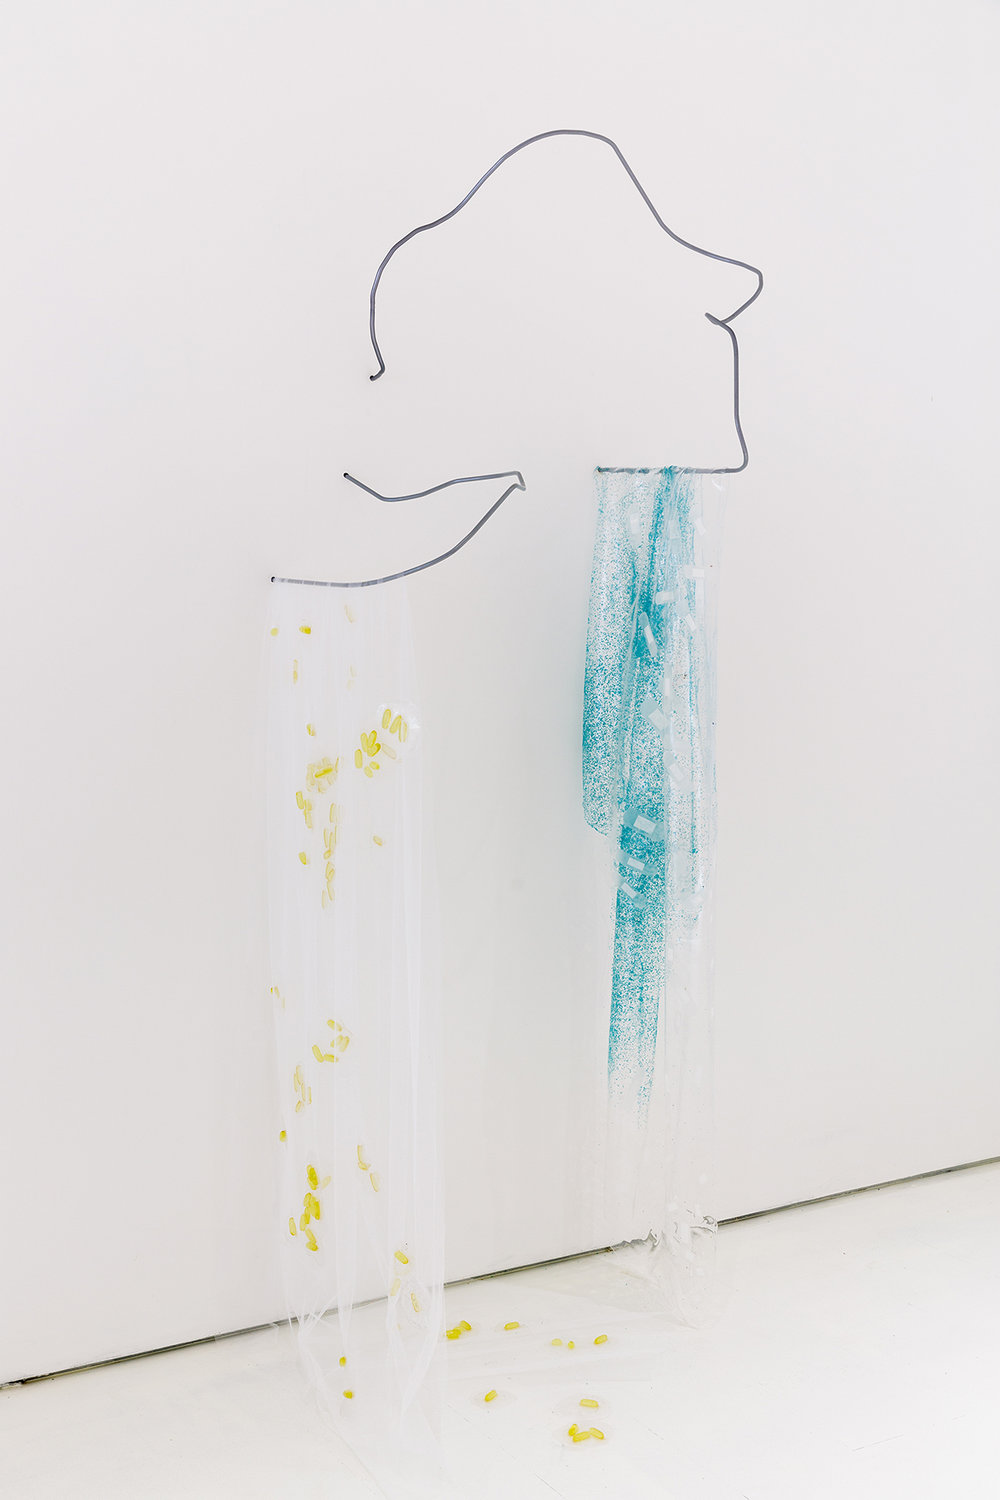 Leah Carless. Soft Cover (glowing) (Powder coated steel, polyester mesh, silicone, fish oil capsules, evening primrose oil capsules 60 x 130 x 60 cm). | Leah Carless. Soft Cover (itchy) (Powder coated steel, silicone, polythene micro beads, plasters 40 x 175 x 45 cm). Photo: Tim Bowditch.